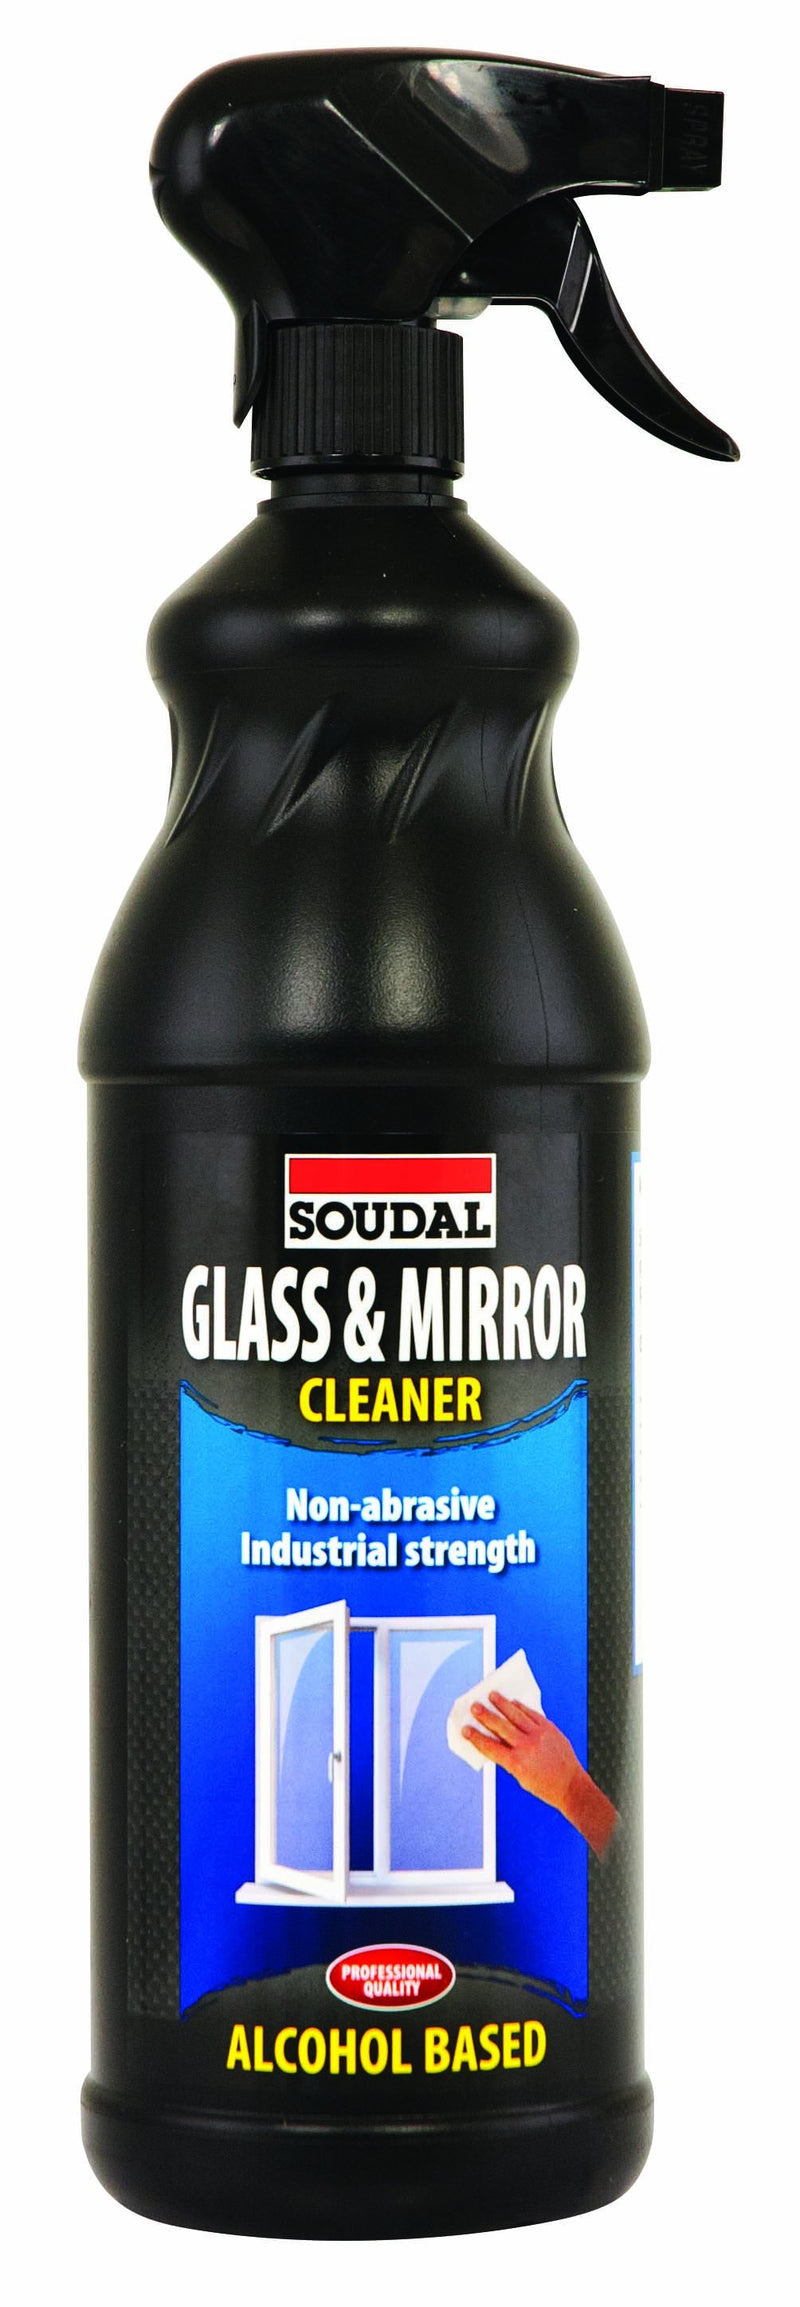 GLASS & MIRROR CLEANER - C2B Trade Store